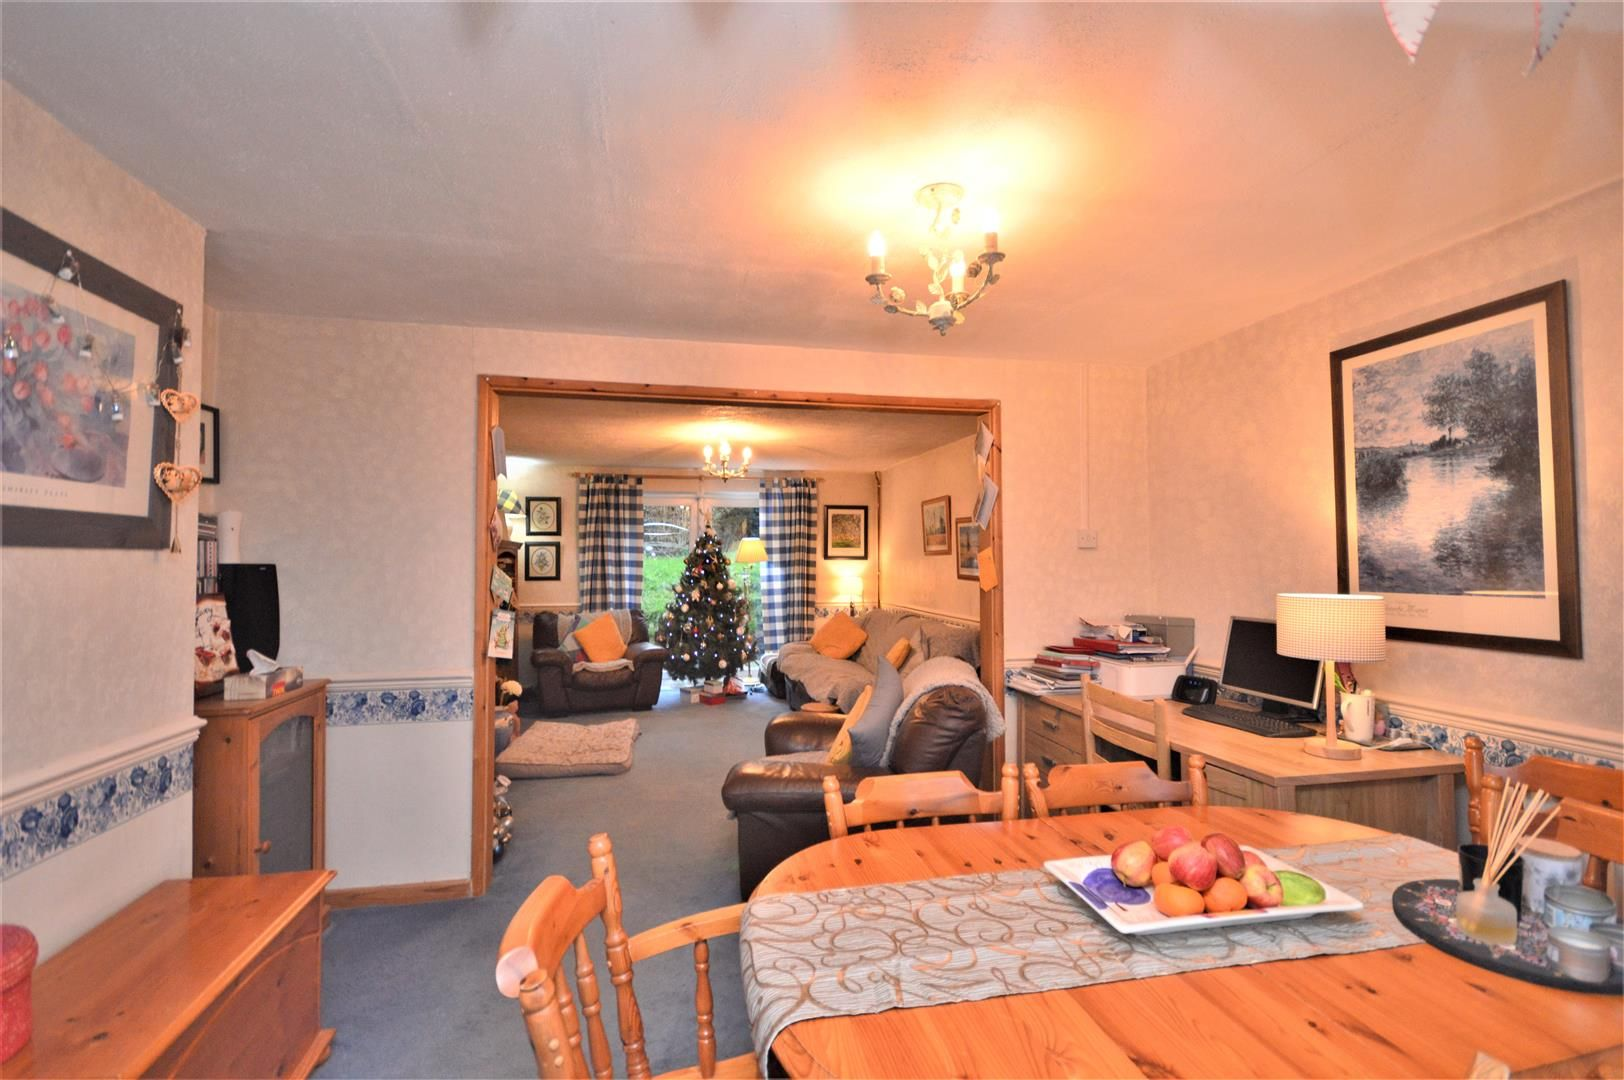 3 bed semi-detached for sale in Much Birch  - Property Image 3